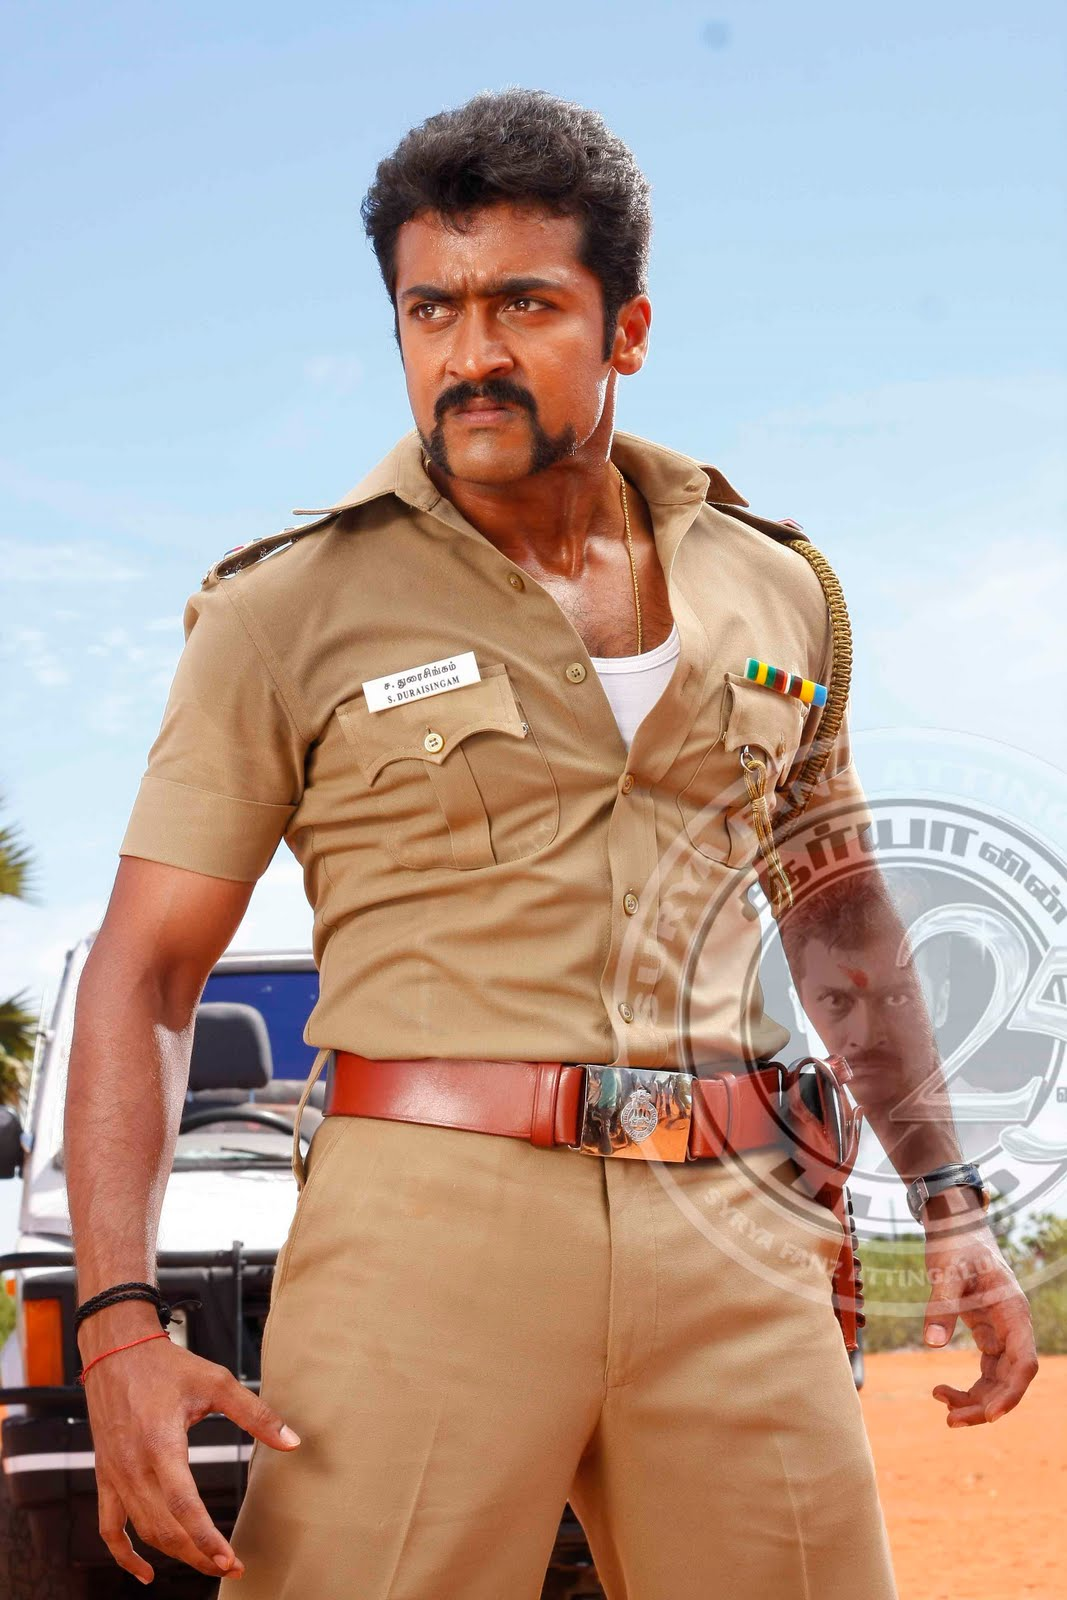 Surya fans attingal kerala singam surya wallpapers altavistaventures Image collections